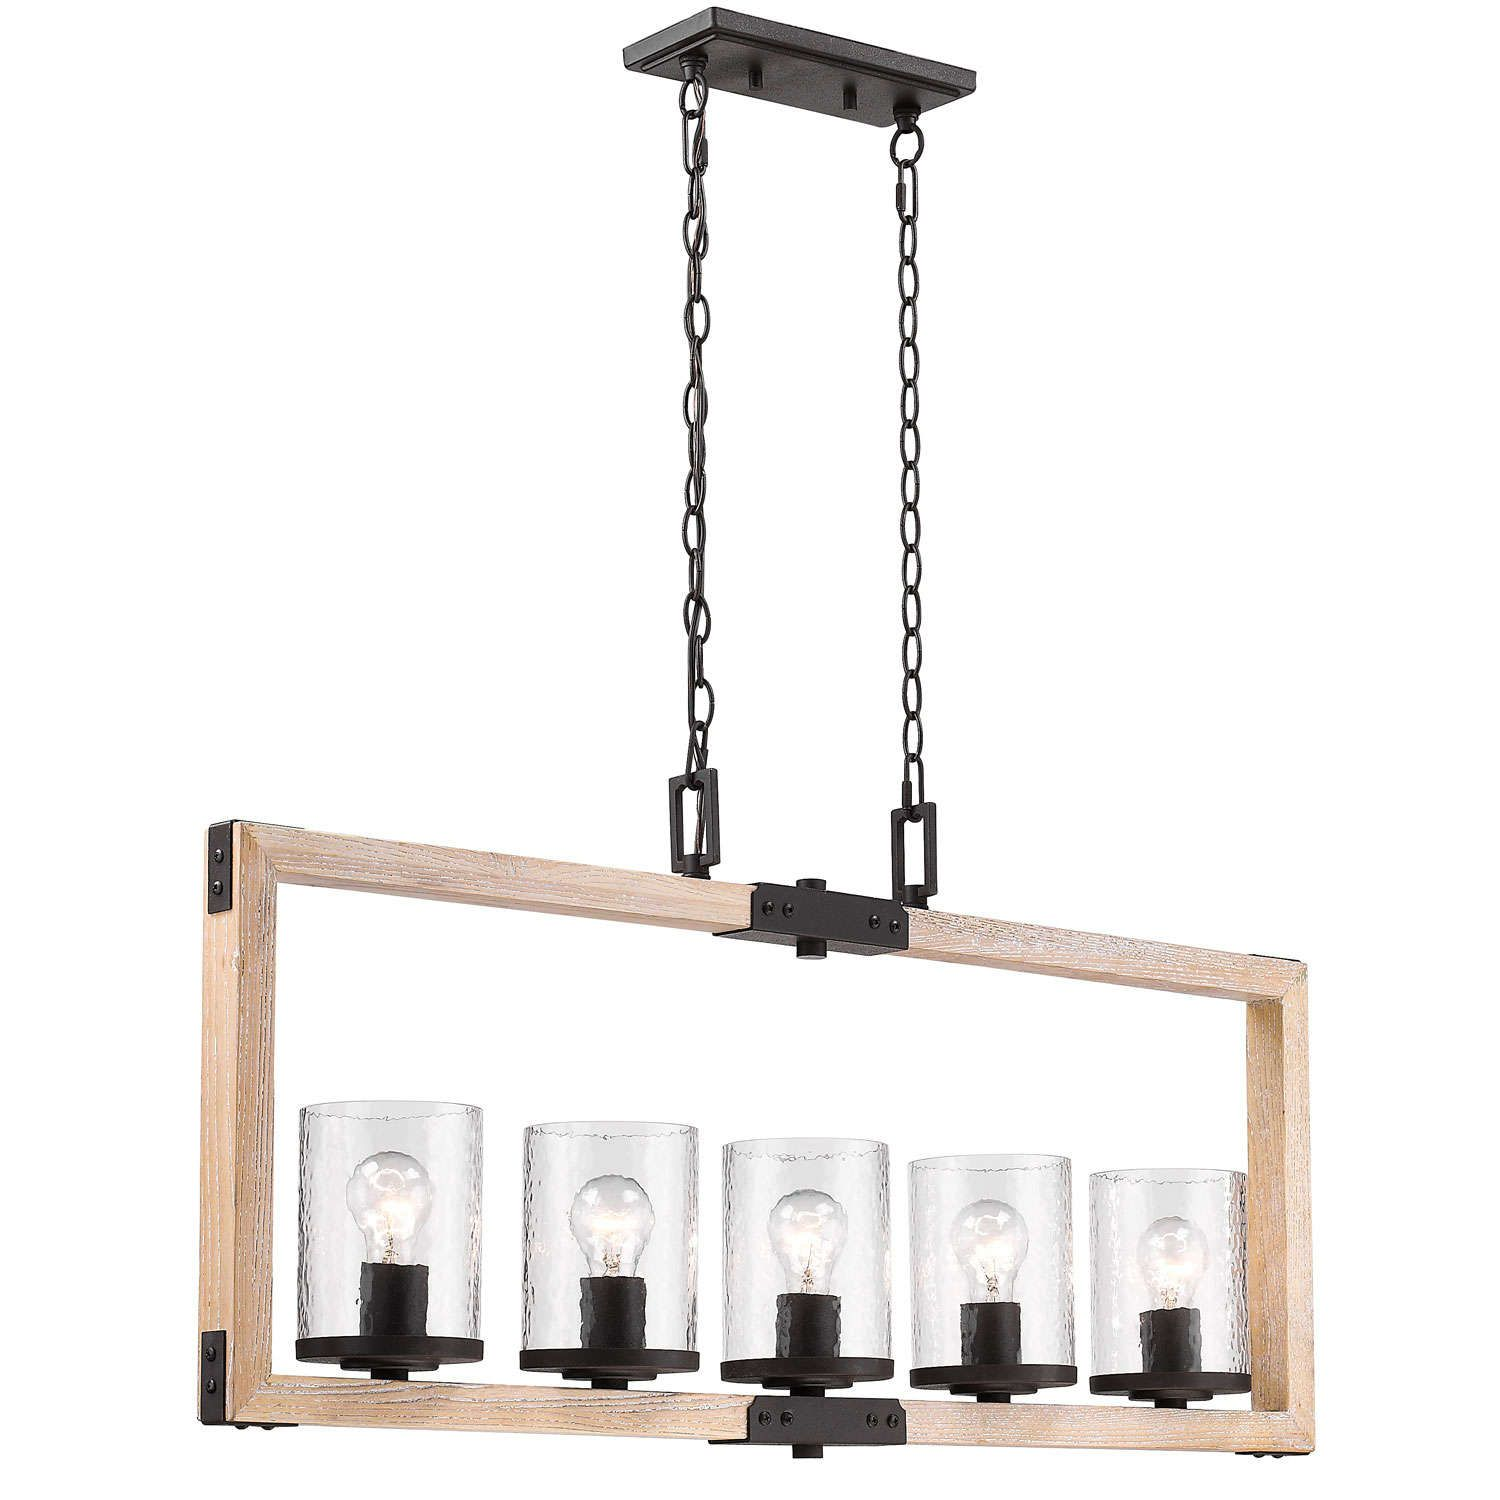 This 5 light Linear Pendant from the Eastwood collection by Golden ...